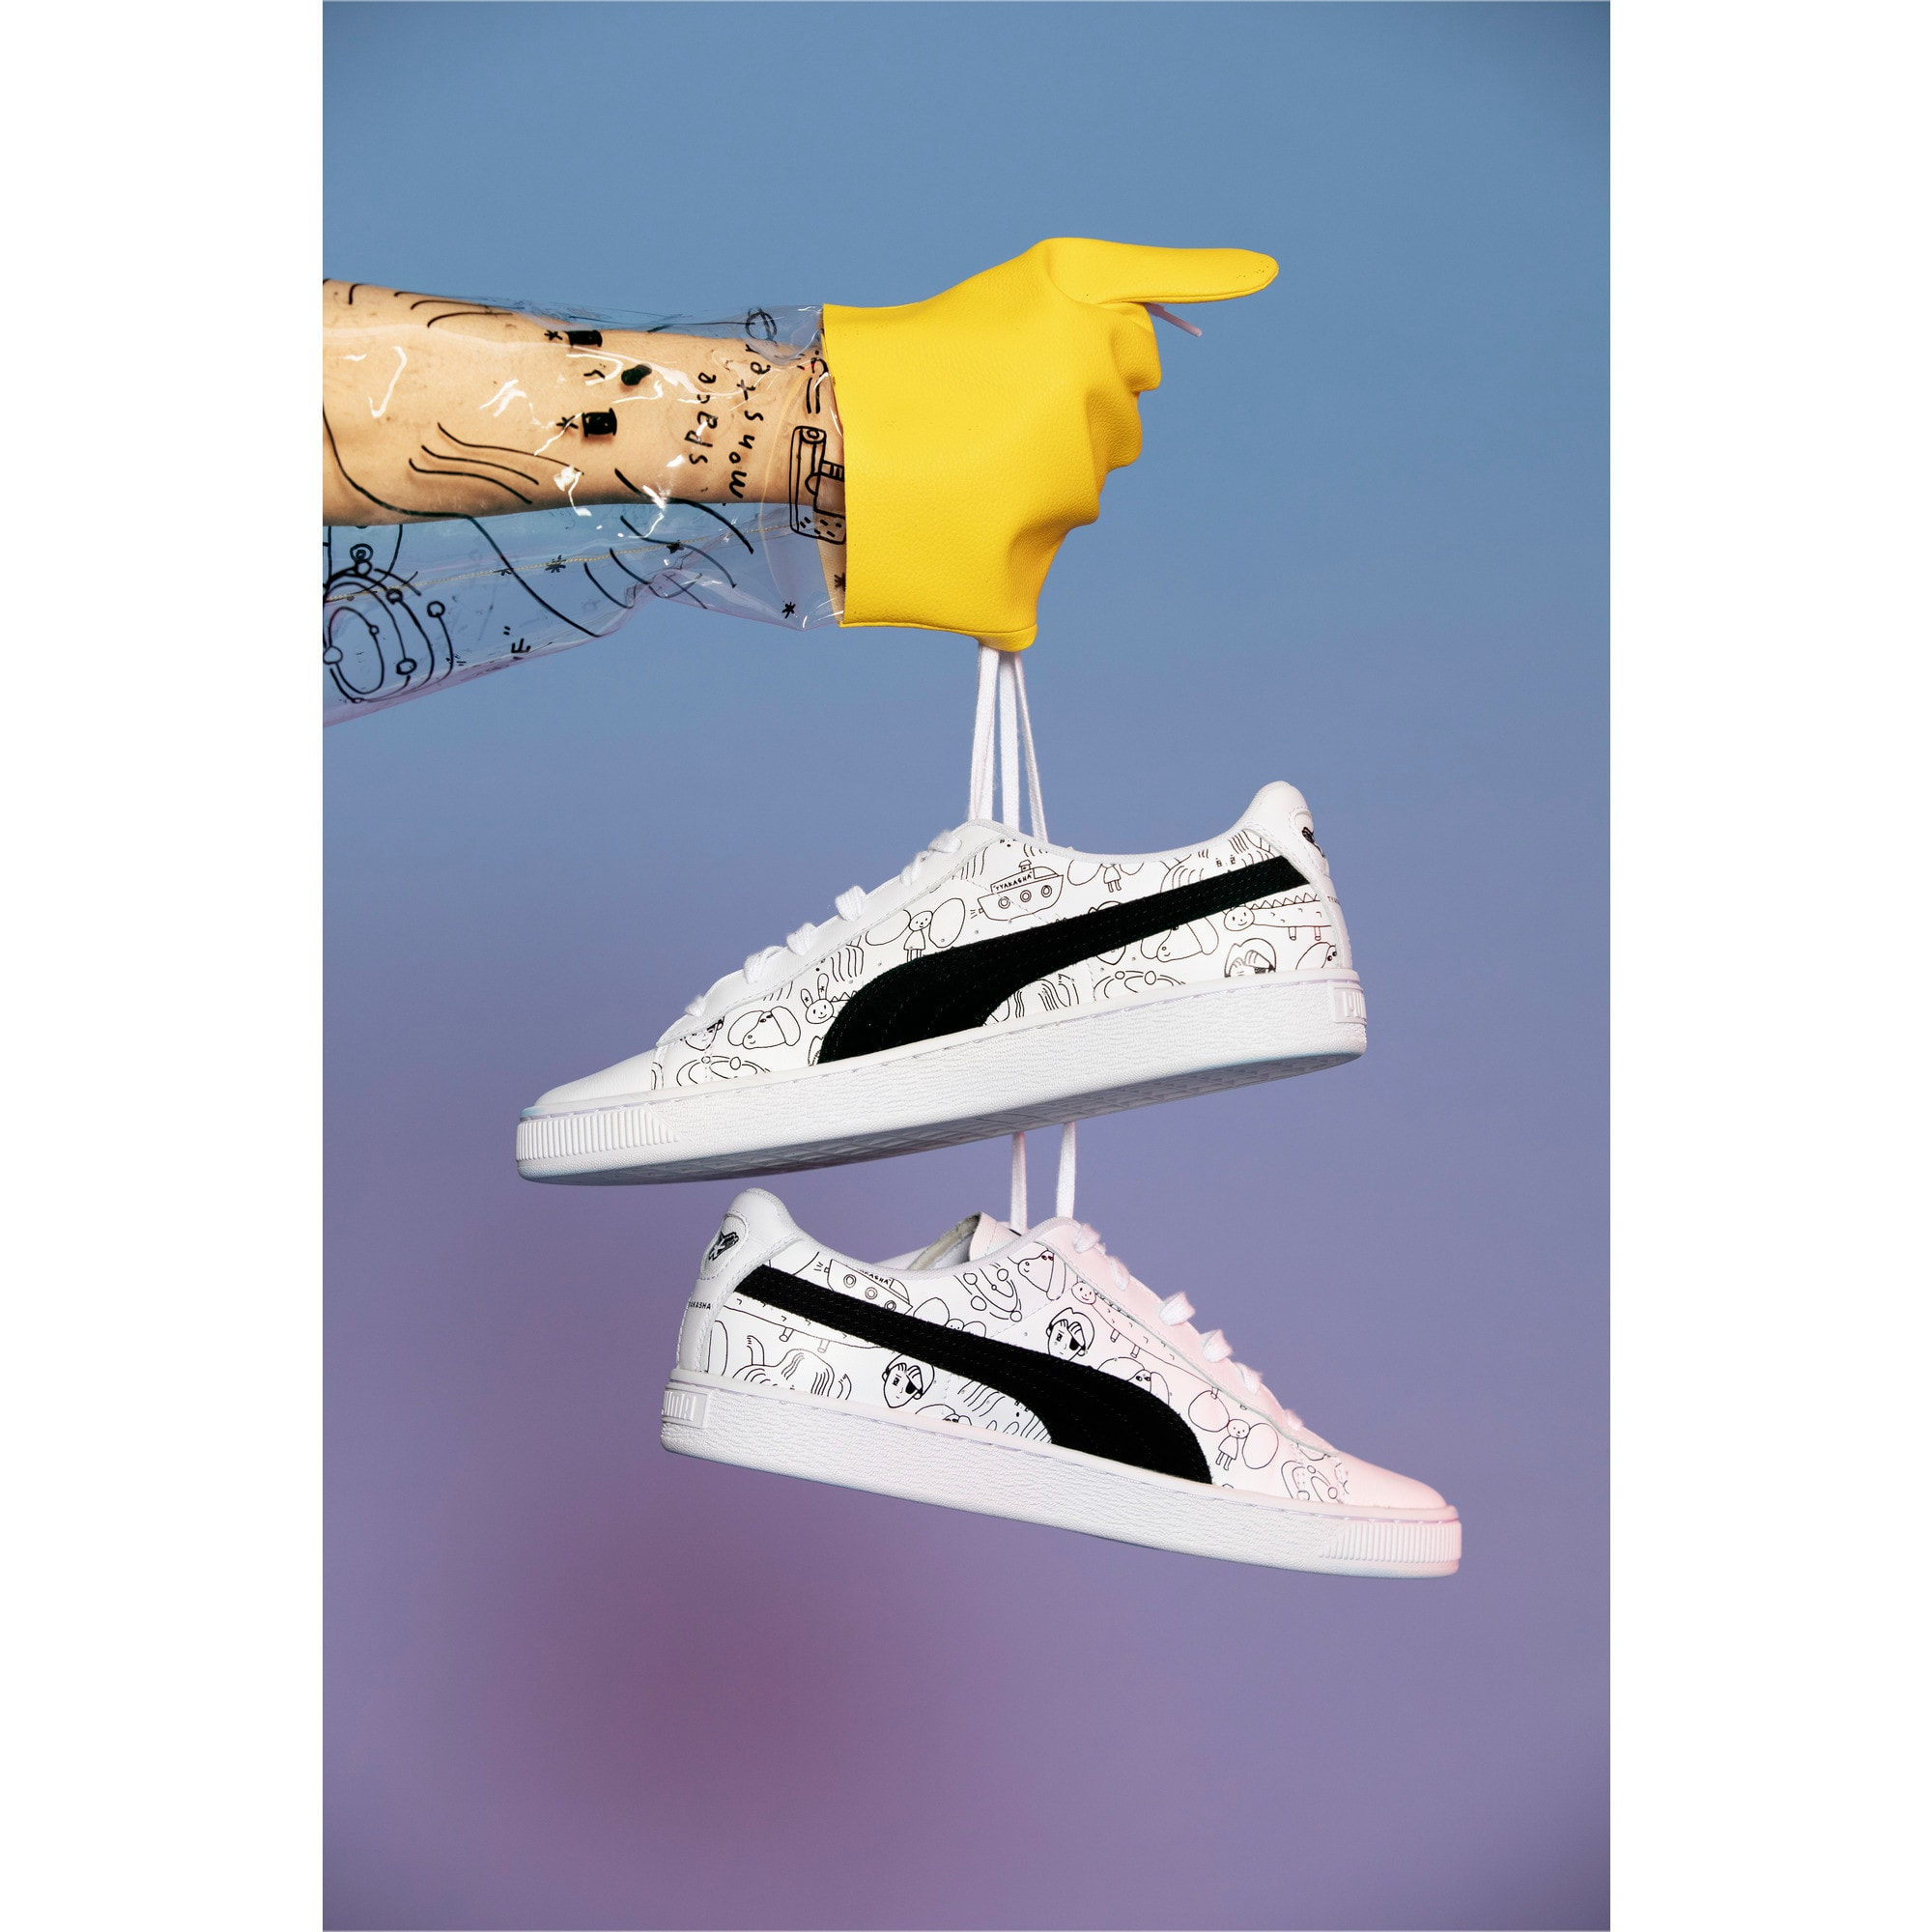 Thumbnail 9 of PUMA x TYAKASHA バスケット スニーカー, Puma White-Puma Black, medium-JPN